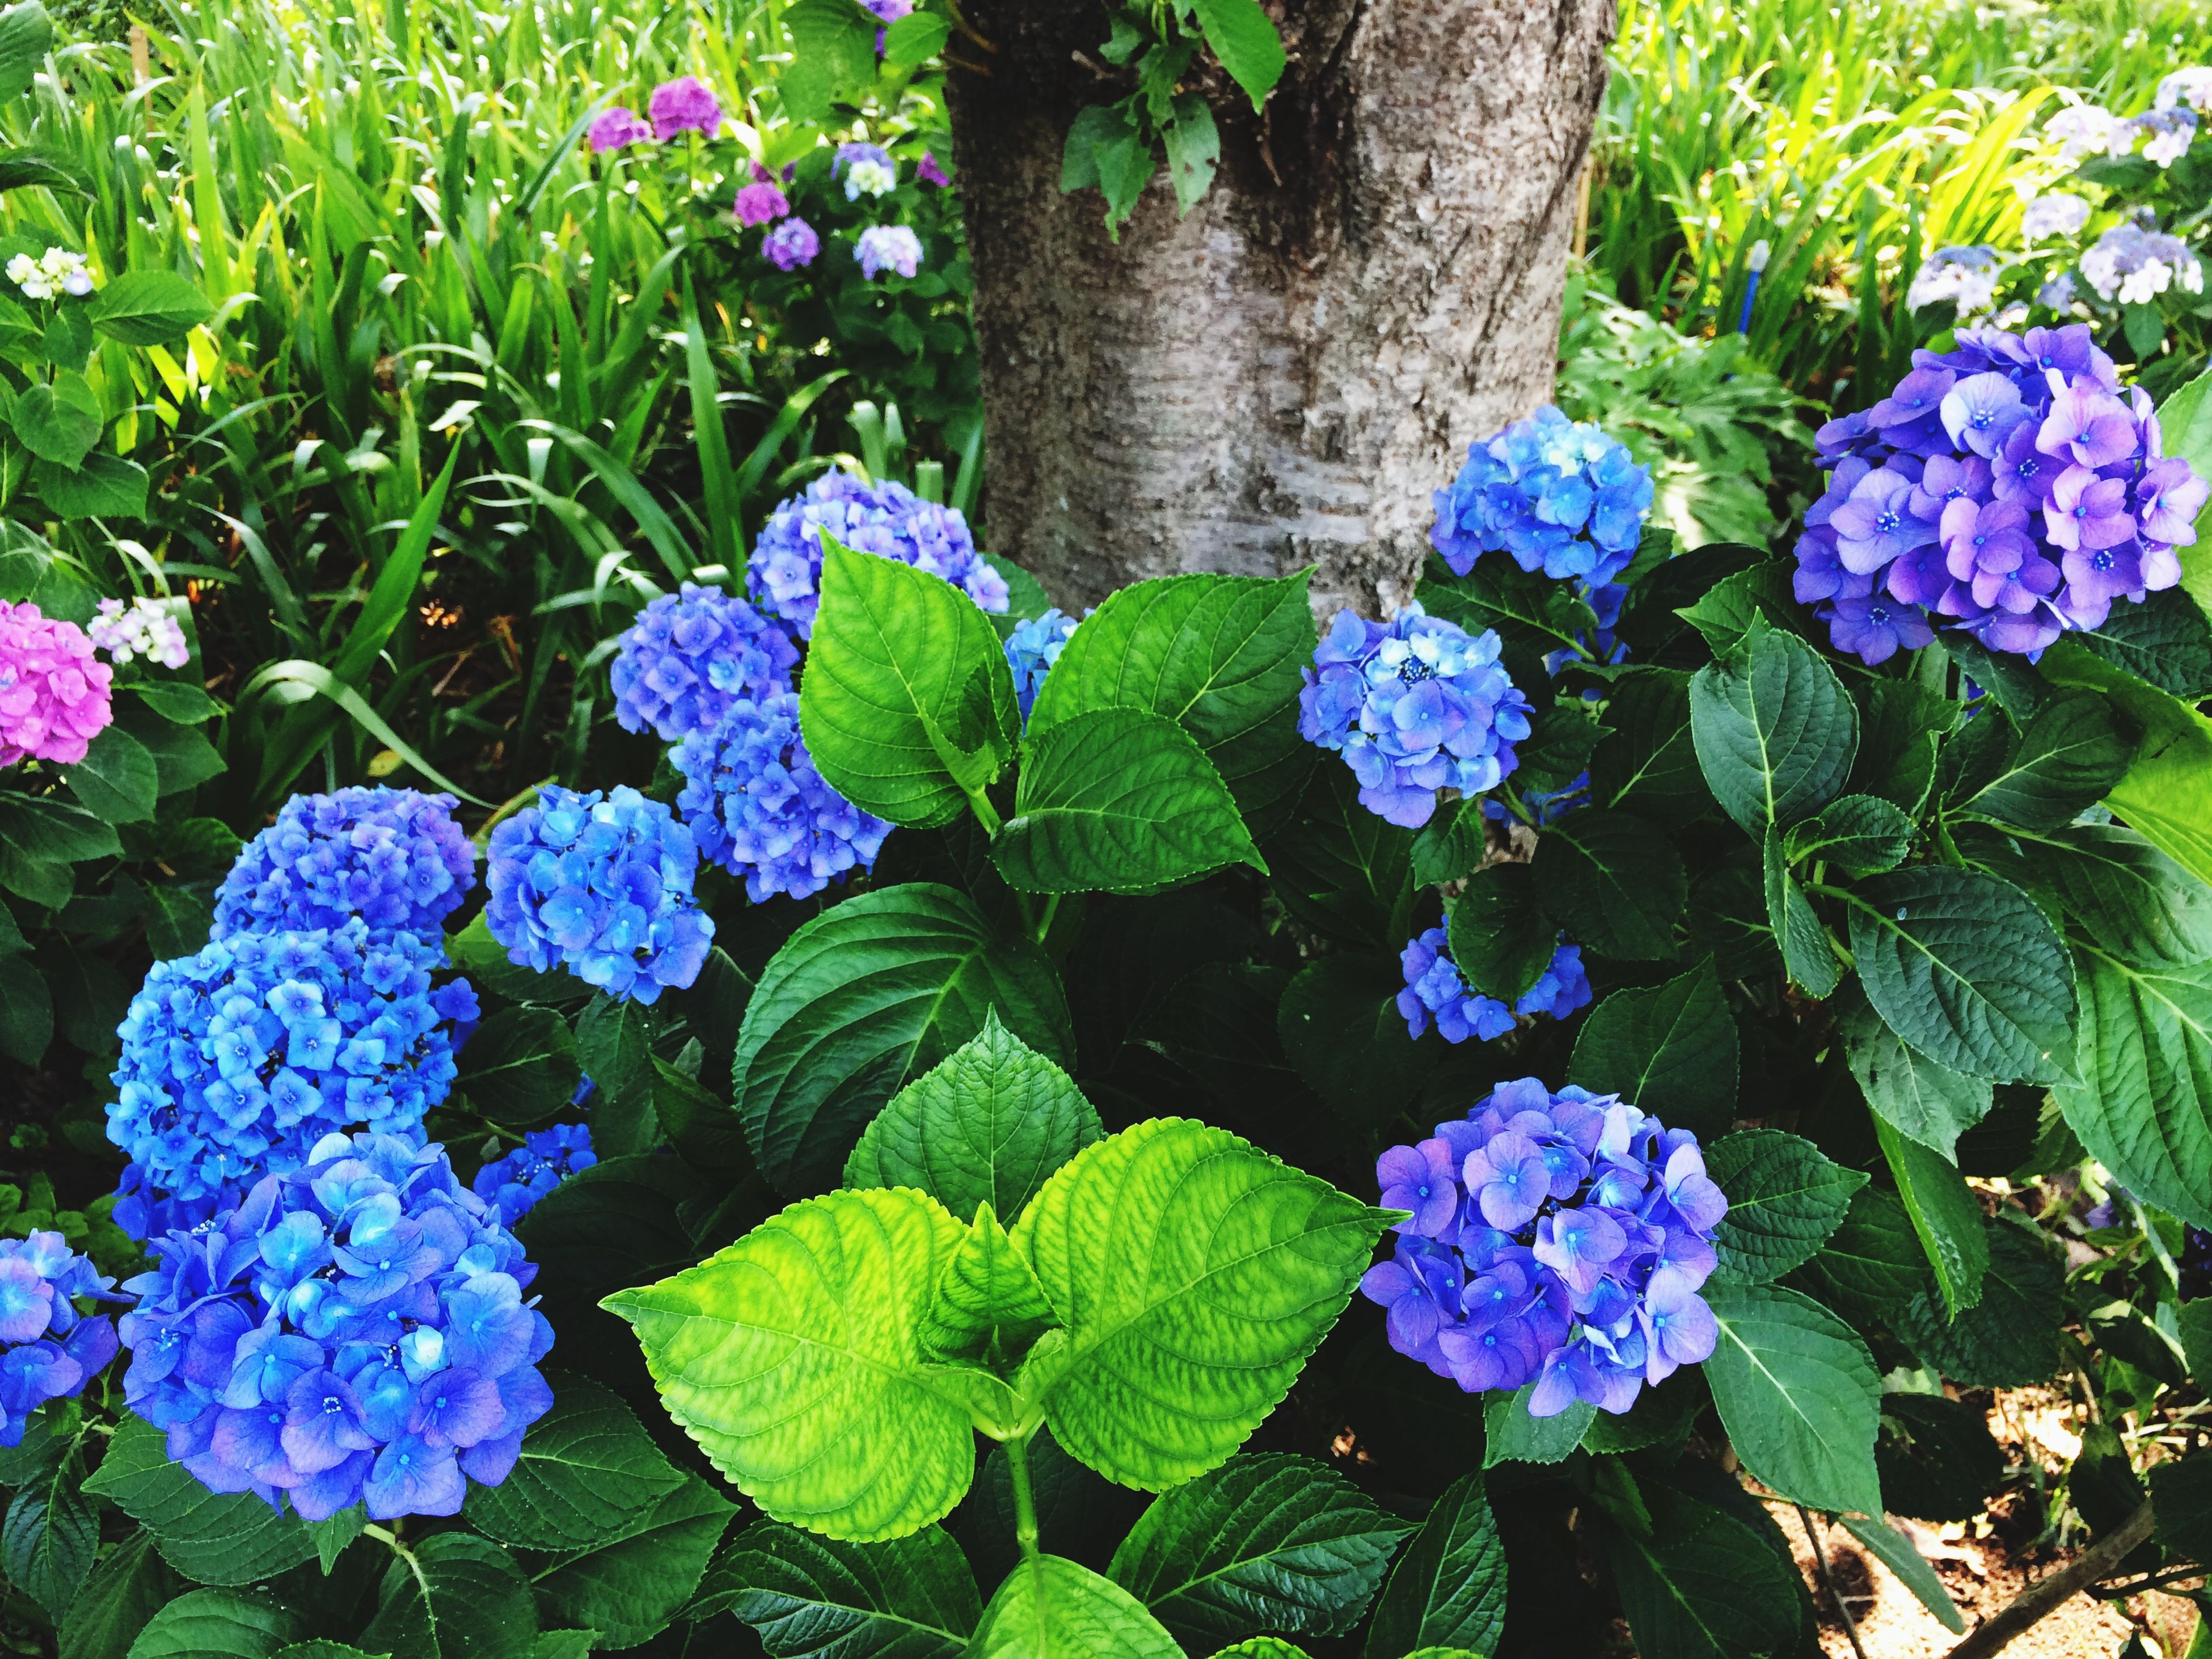 flower, purple, freshness, fragility, growth, beauty in nature, petal, plant, blooming, leaf, flower head, nature, in bloom, high angle view, green color, hydrangea, park - man made space, botany, close-up, springtime